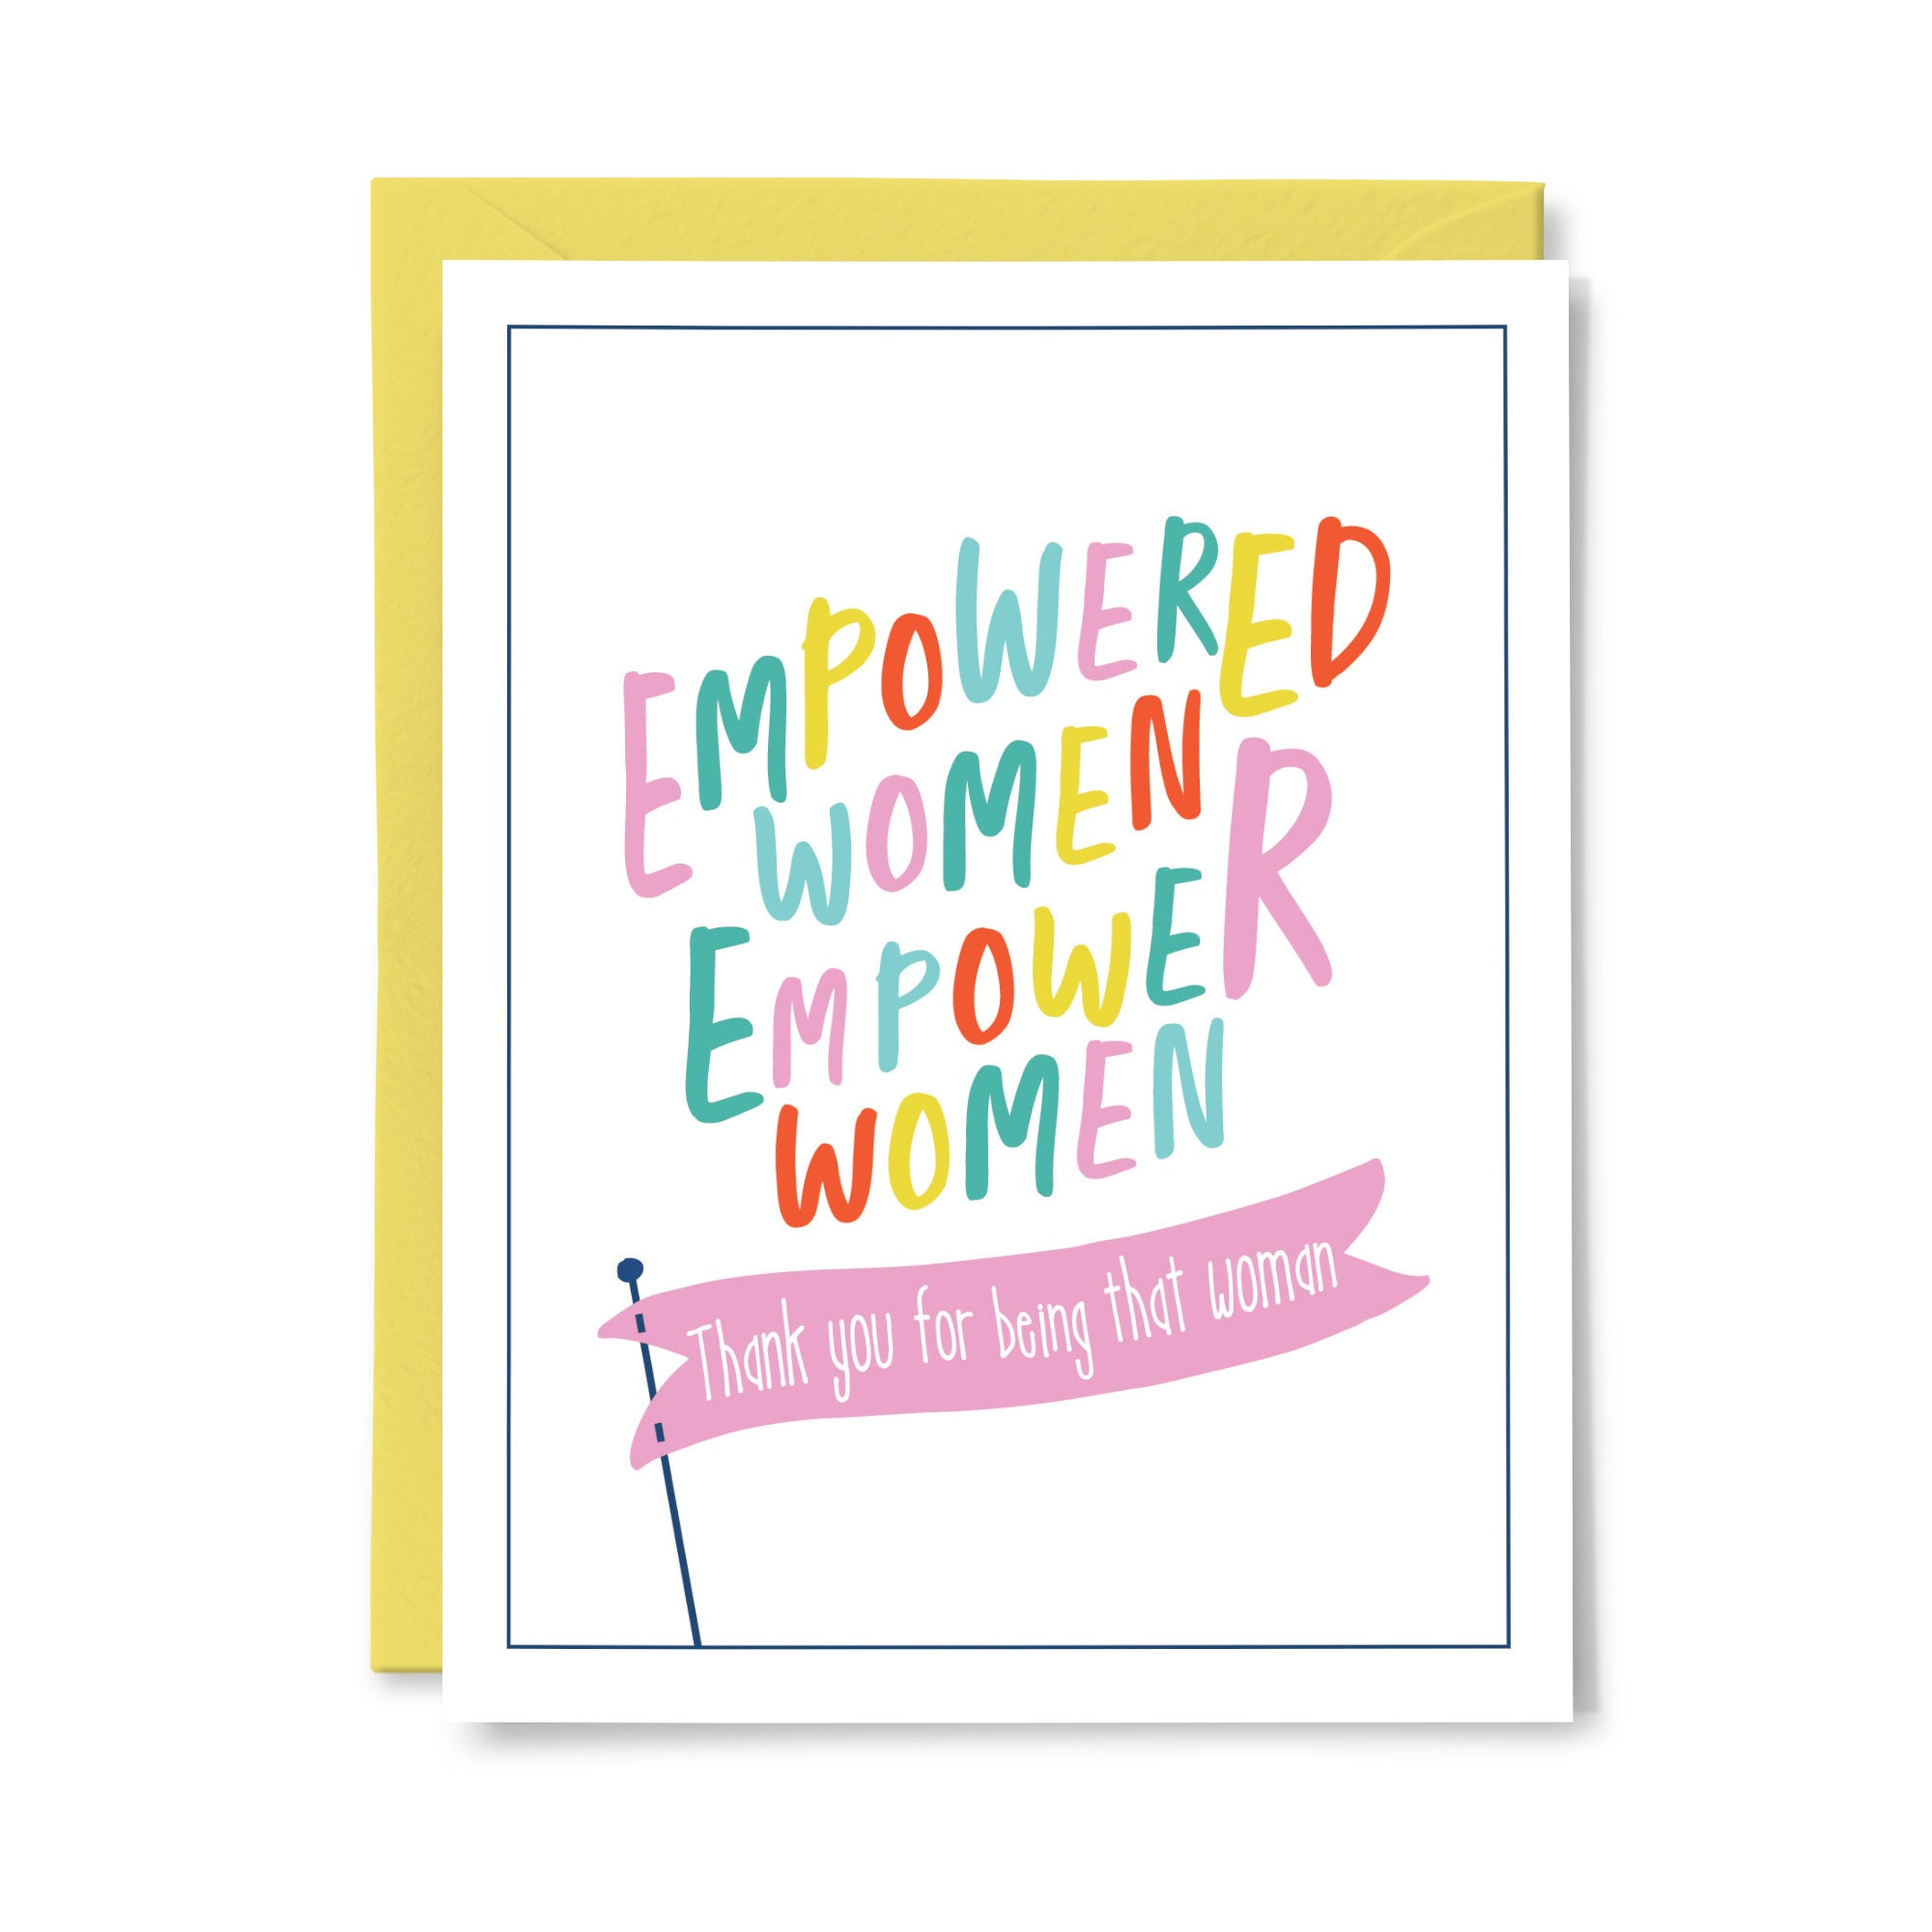 Empowered Women Card